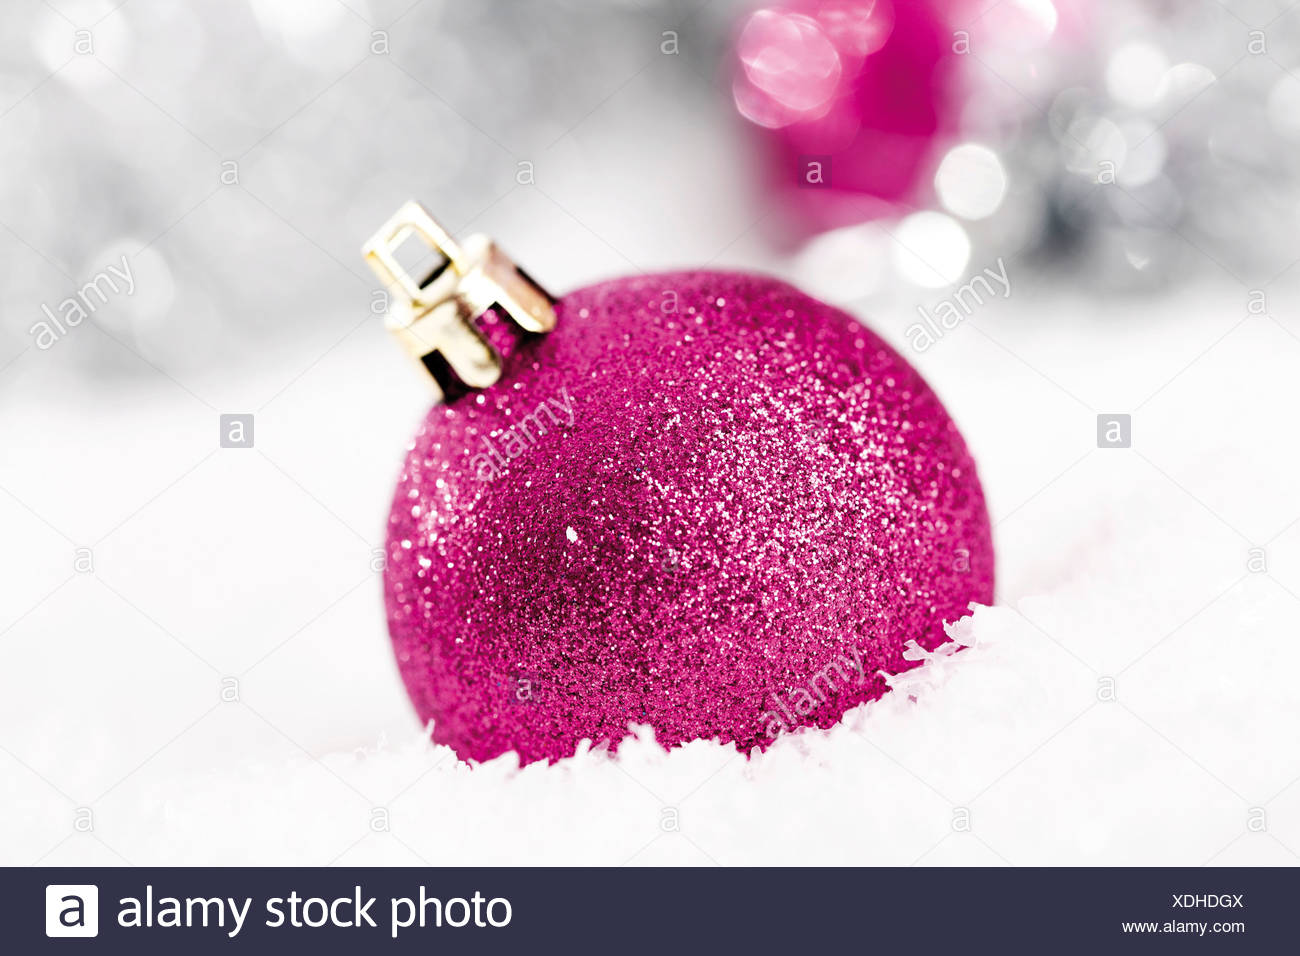 Weihnachtskugeln Pink.Pink Glitter Christmas Tree Balls On Snow With Christmas Decorations